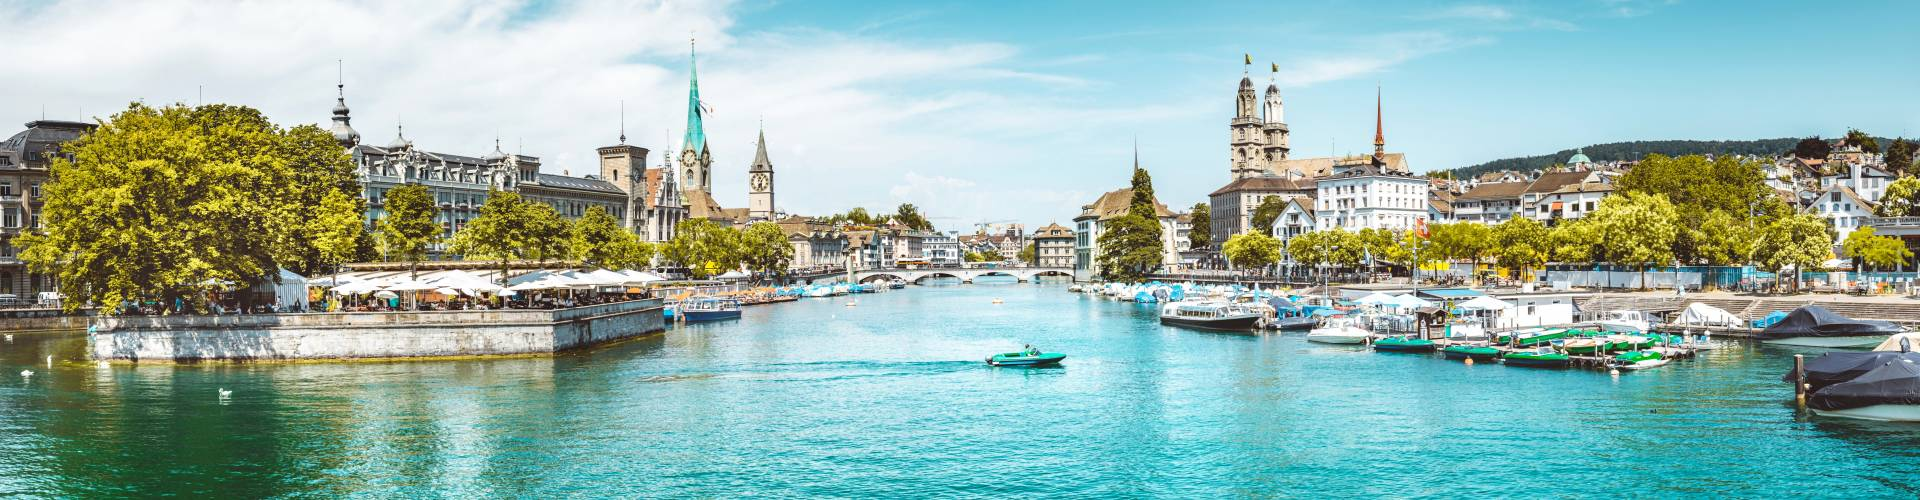 RE/MAX Immobilien Zürich